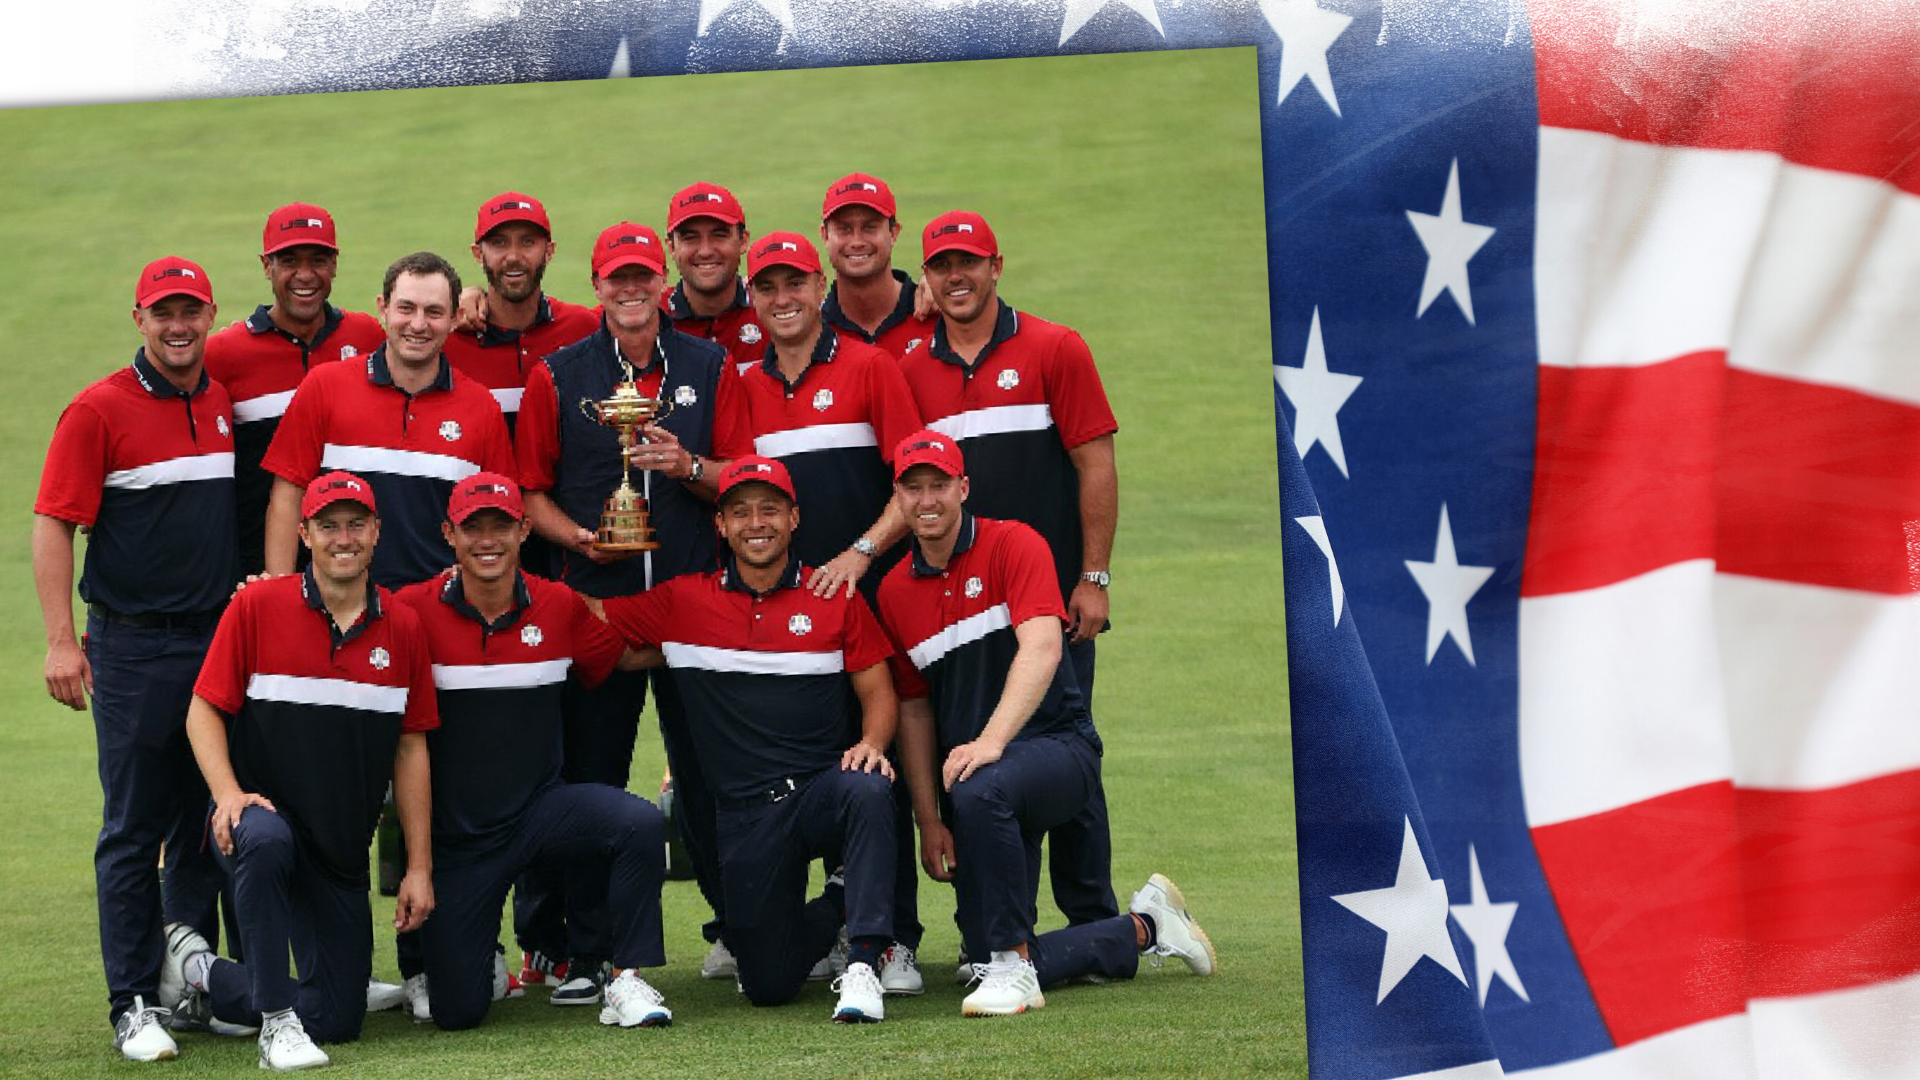 U.S.A. on Top at the Ryder Cup